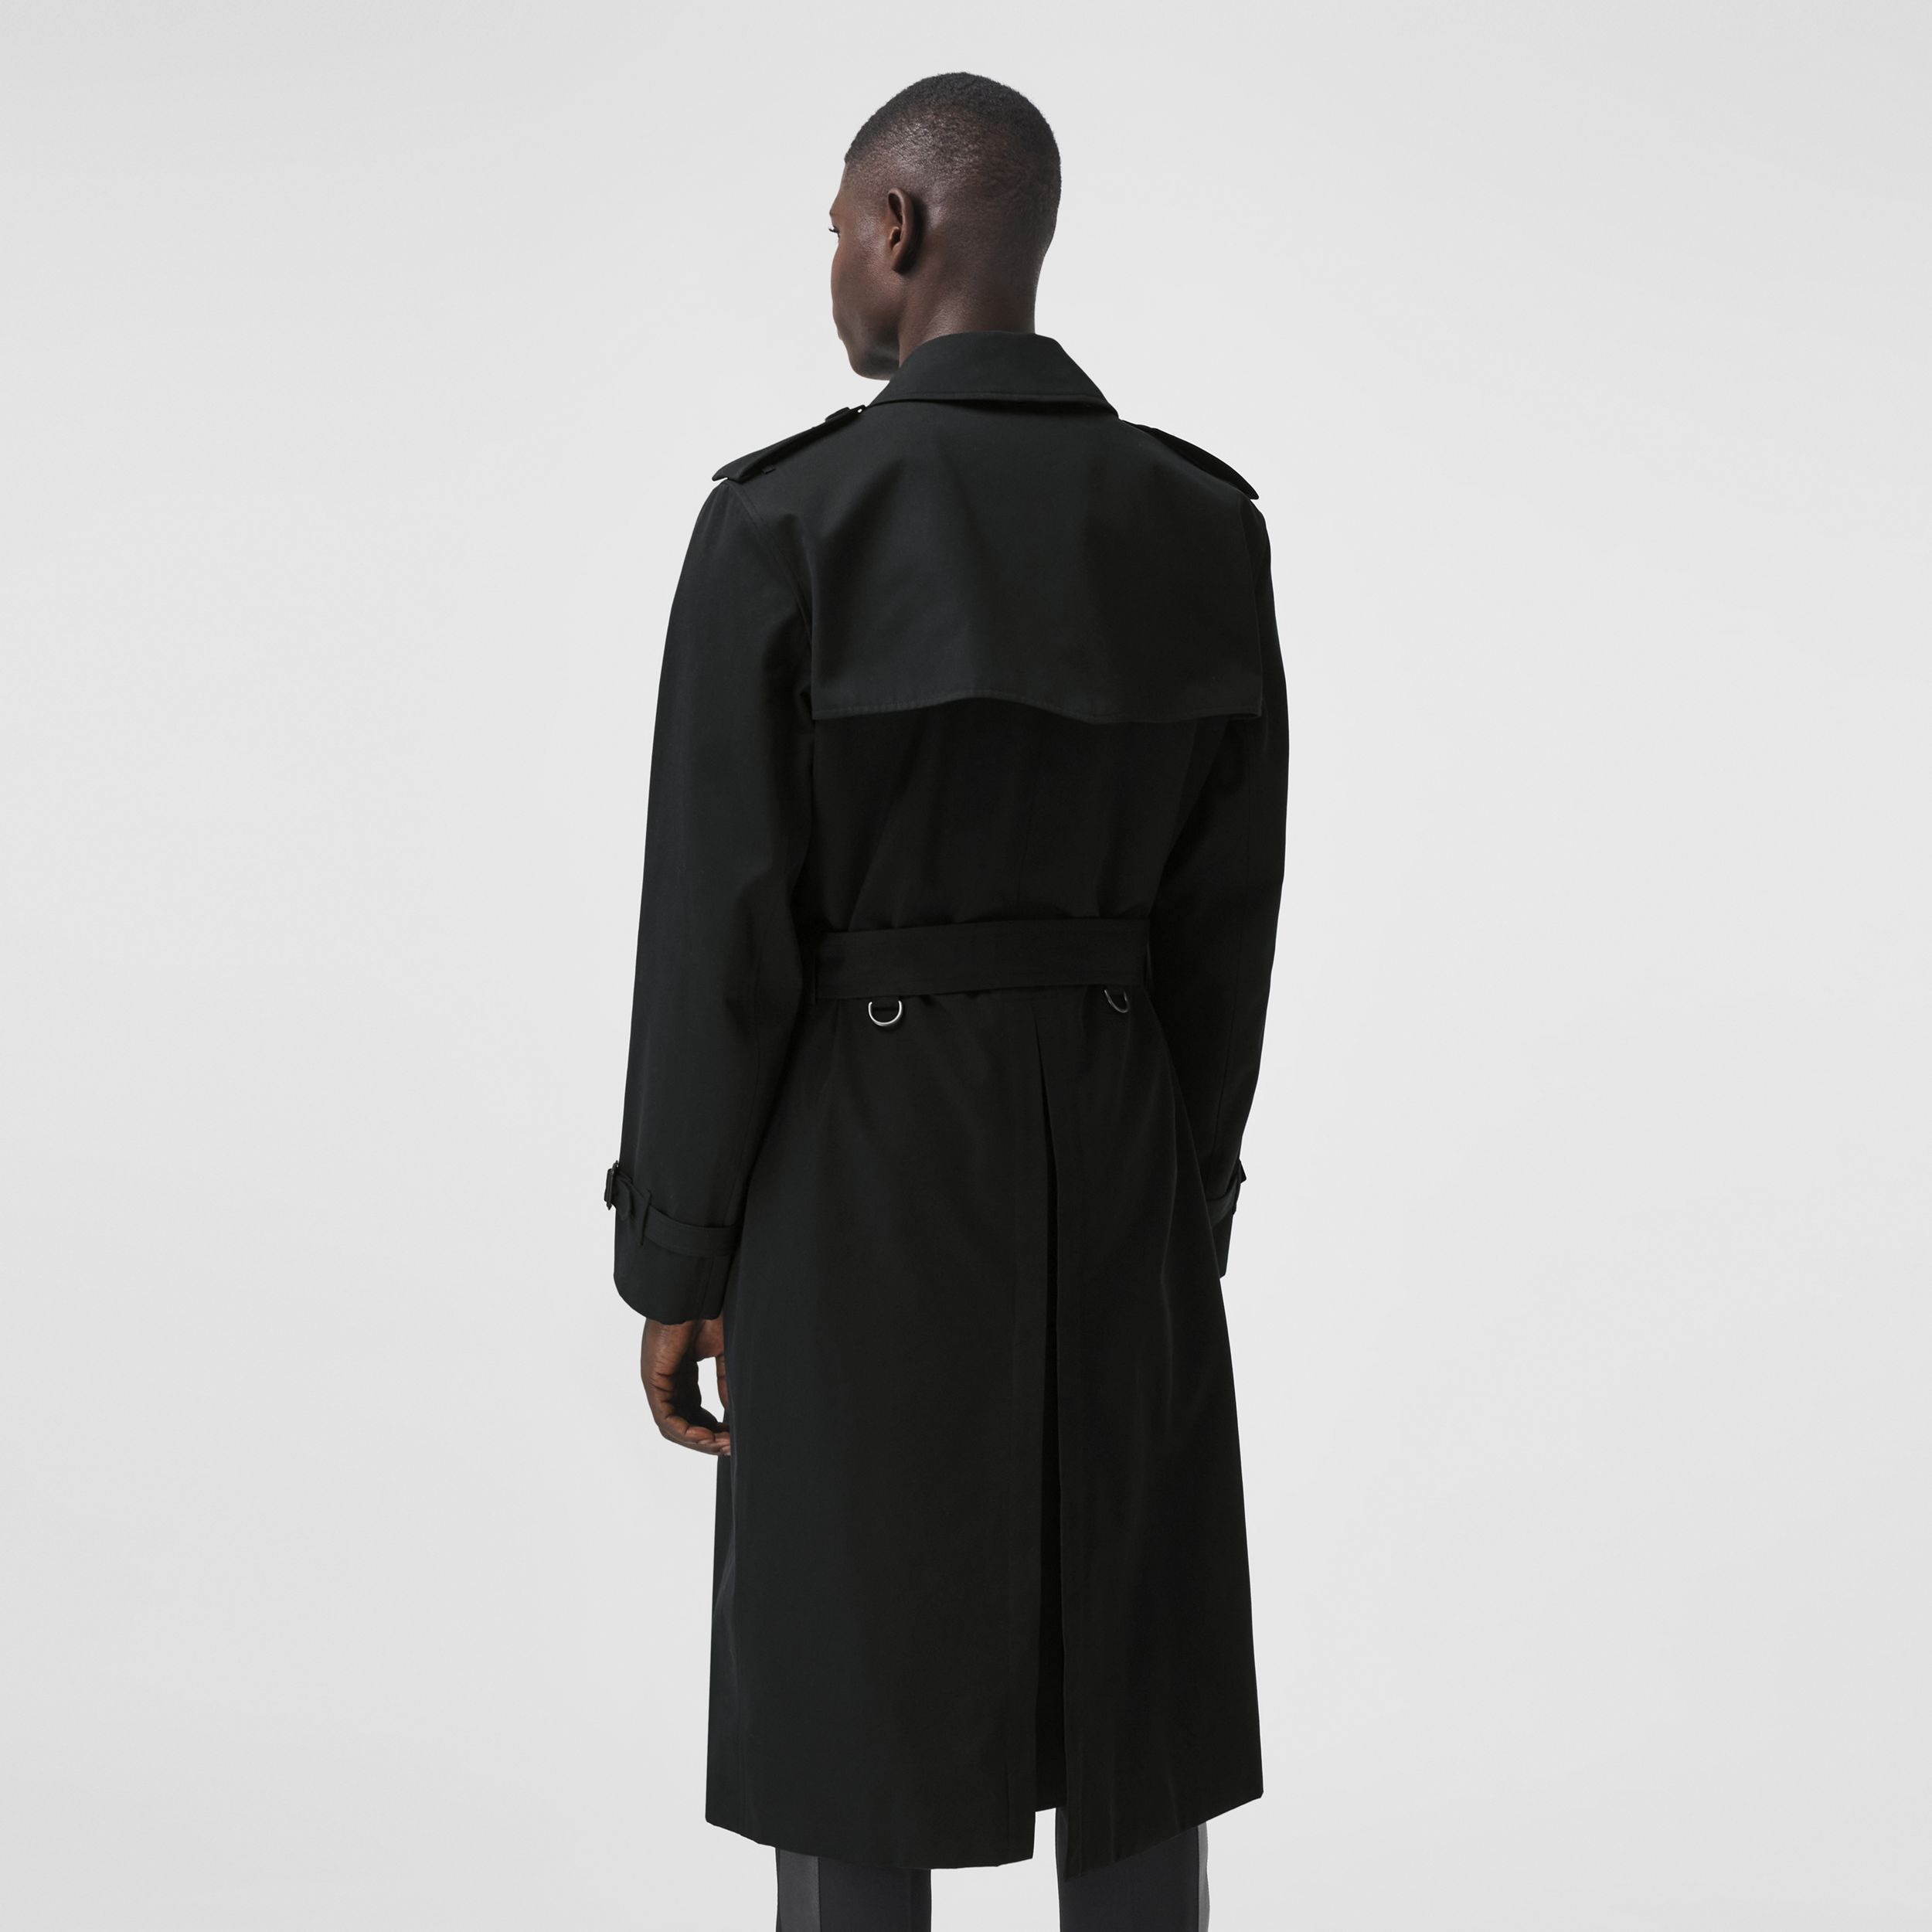 Logo Detail Cotton Gabardine Trench Coat in Black - Men | Burberry - 3